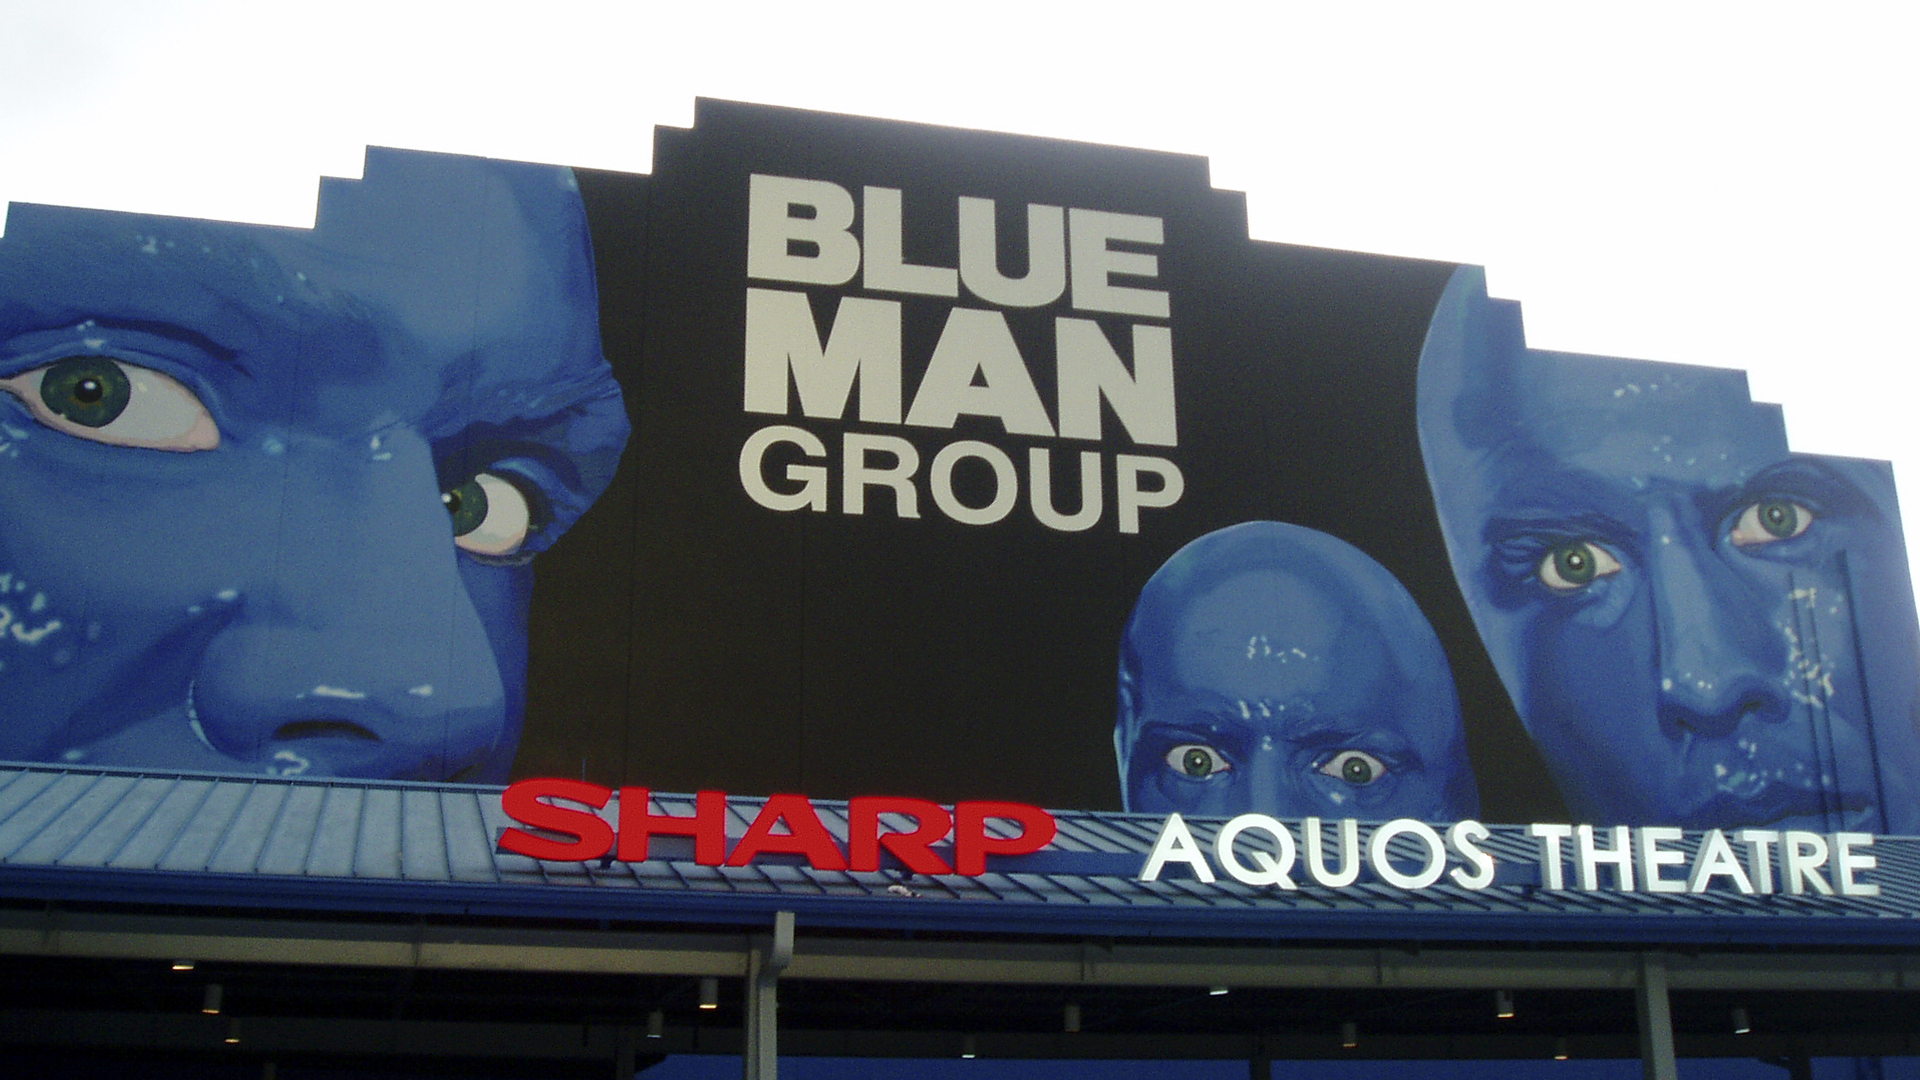 Show do grupo Blue Man no Sharp Aquos Theatre